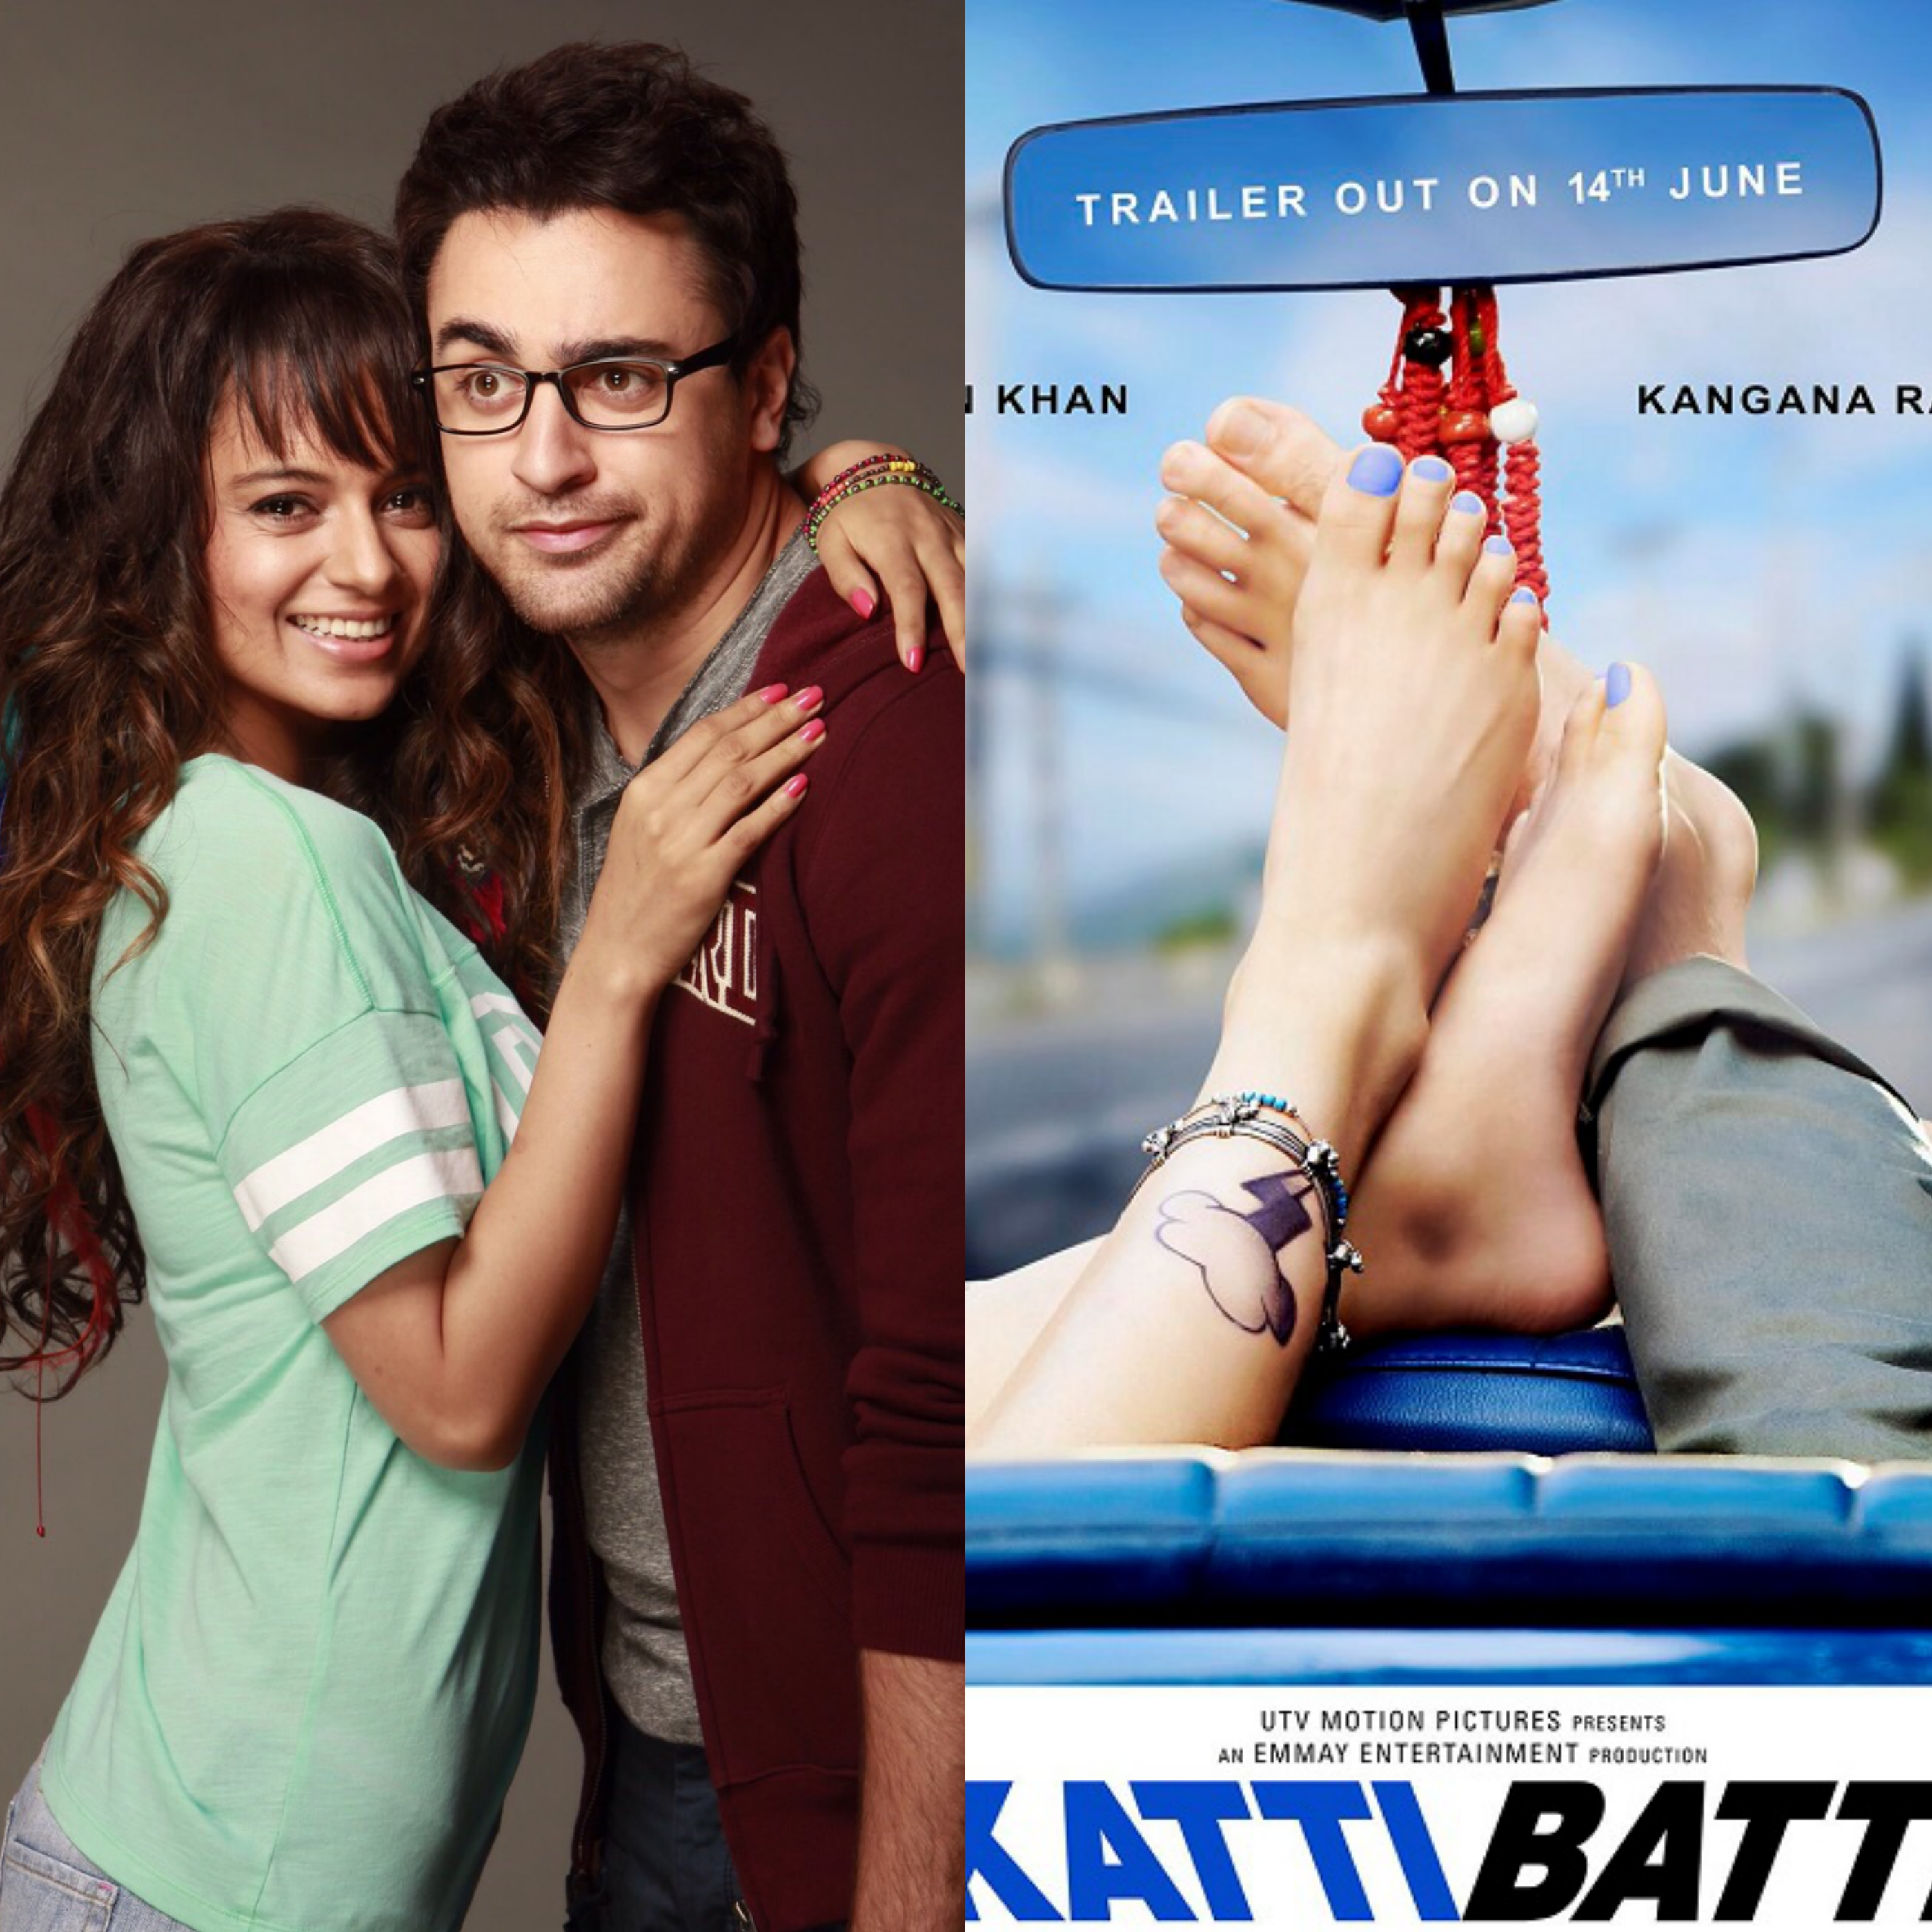 First Poster of Katti Batti